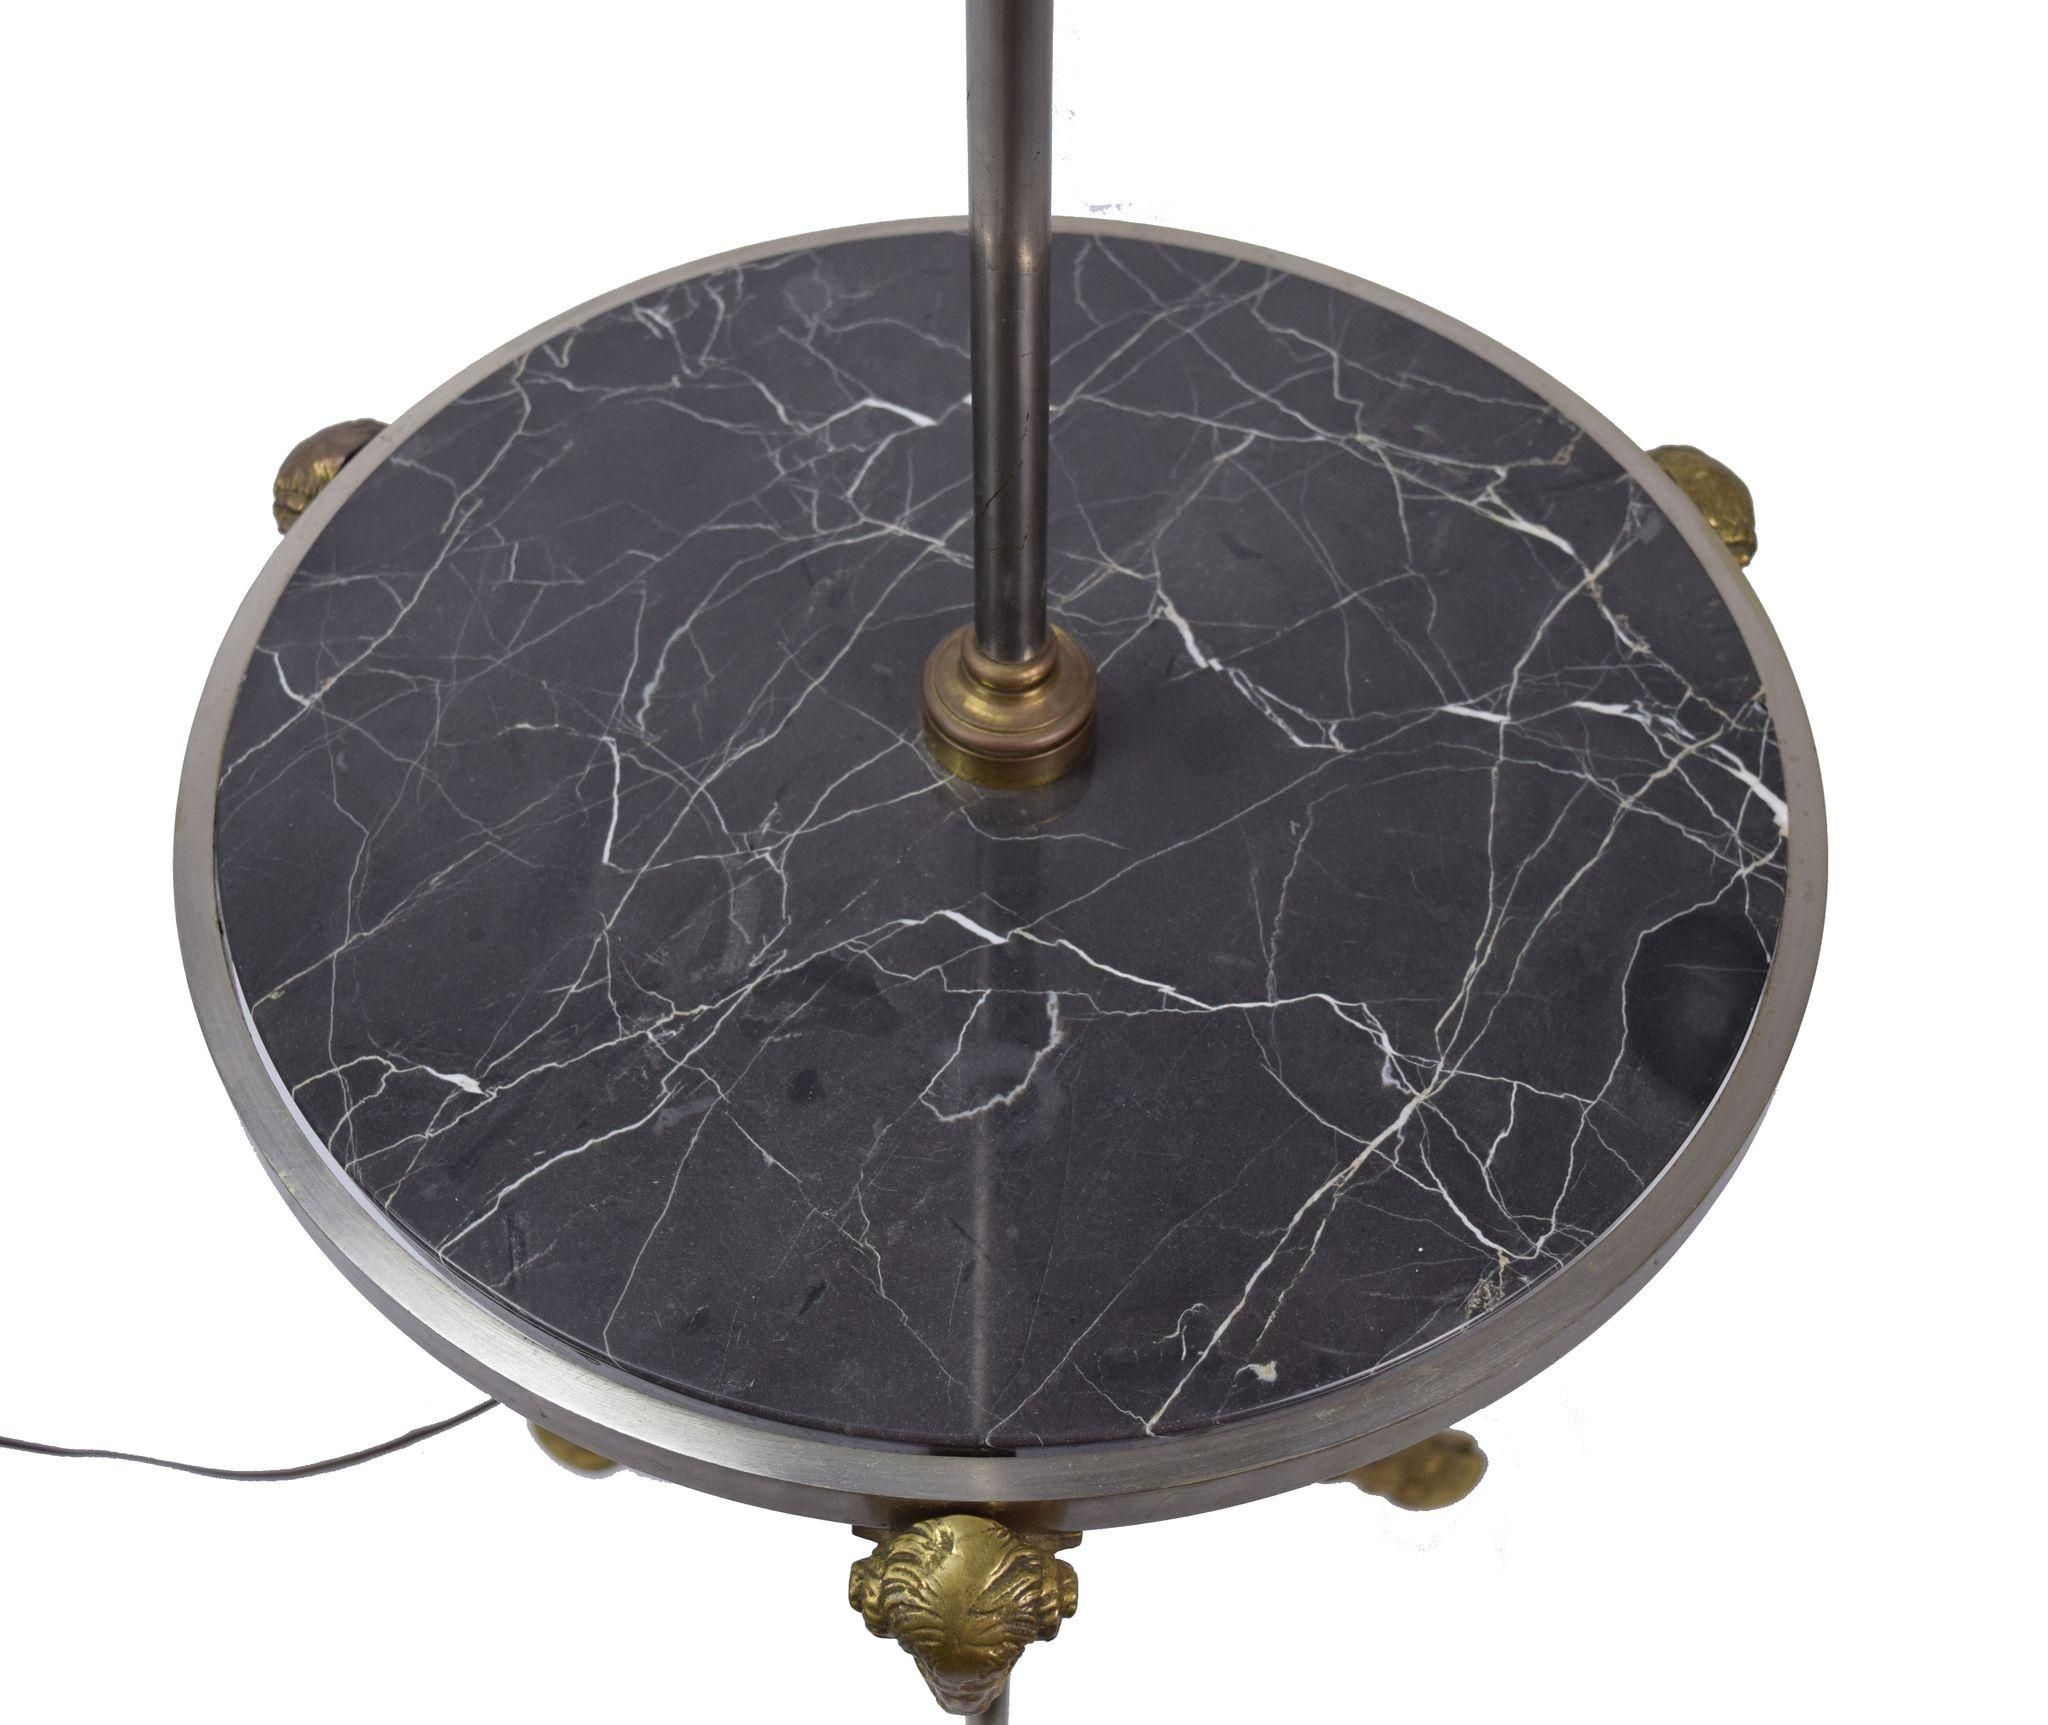 Brass Floor Lamp With Glass Tray Table: Chapman Nickle And Brass Rams Head & Hooved Floor Lamp W